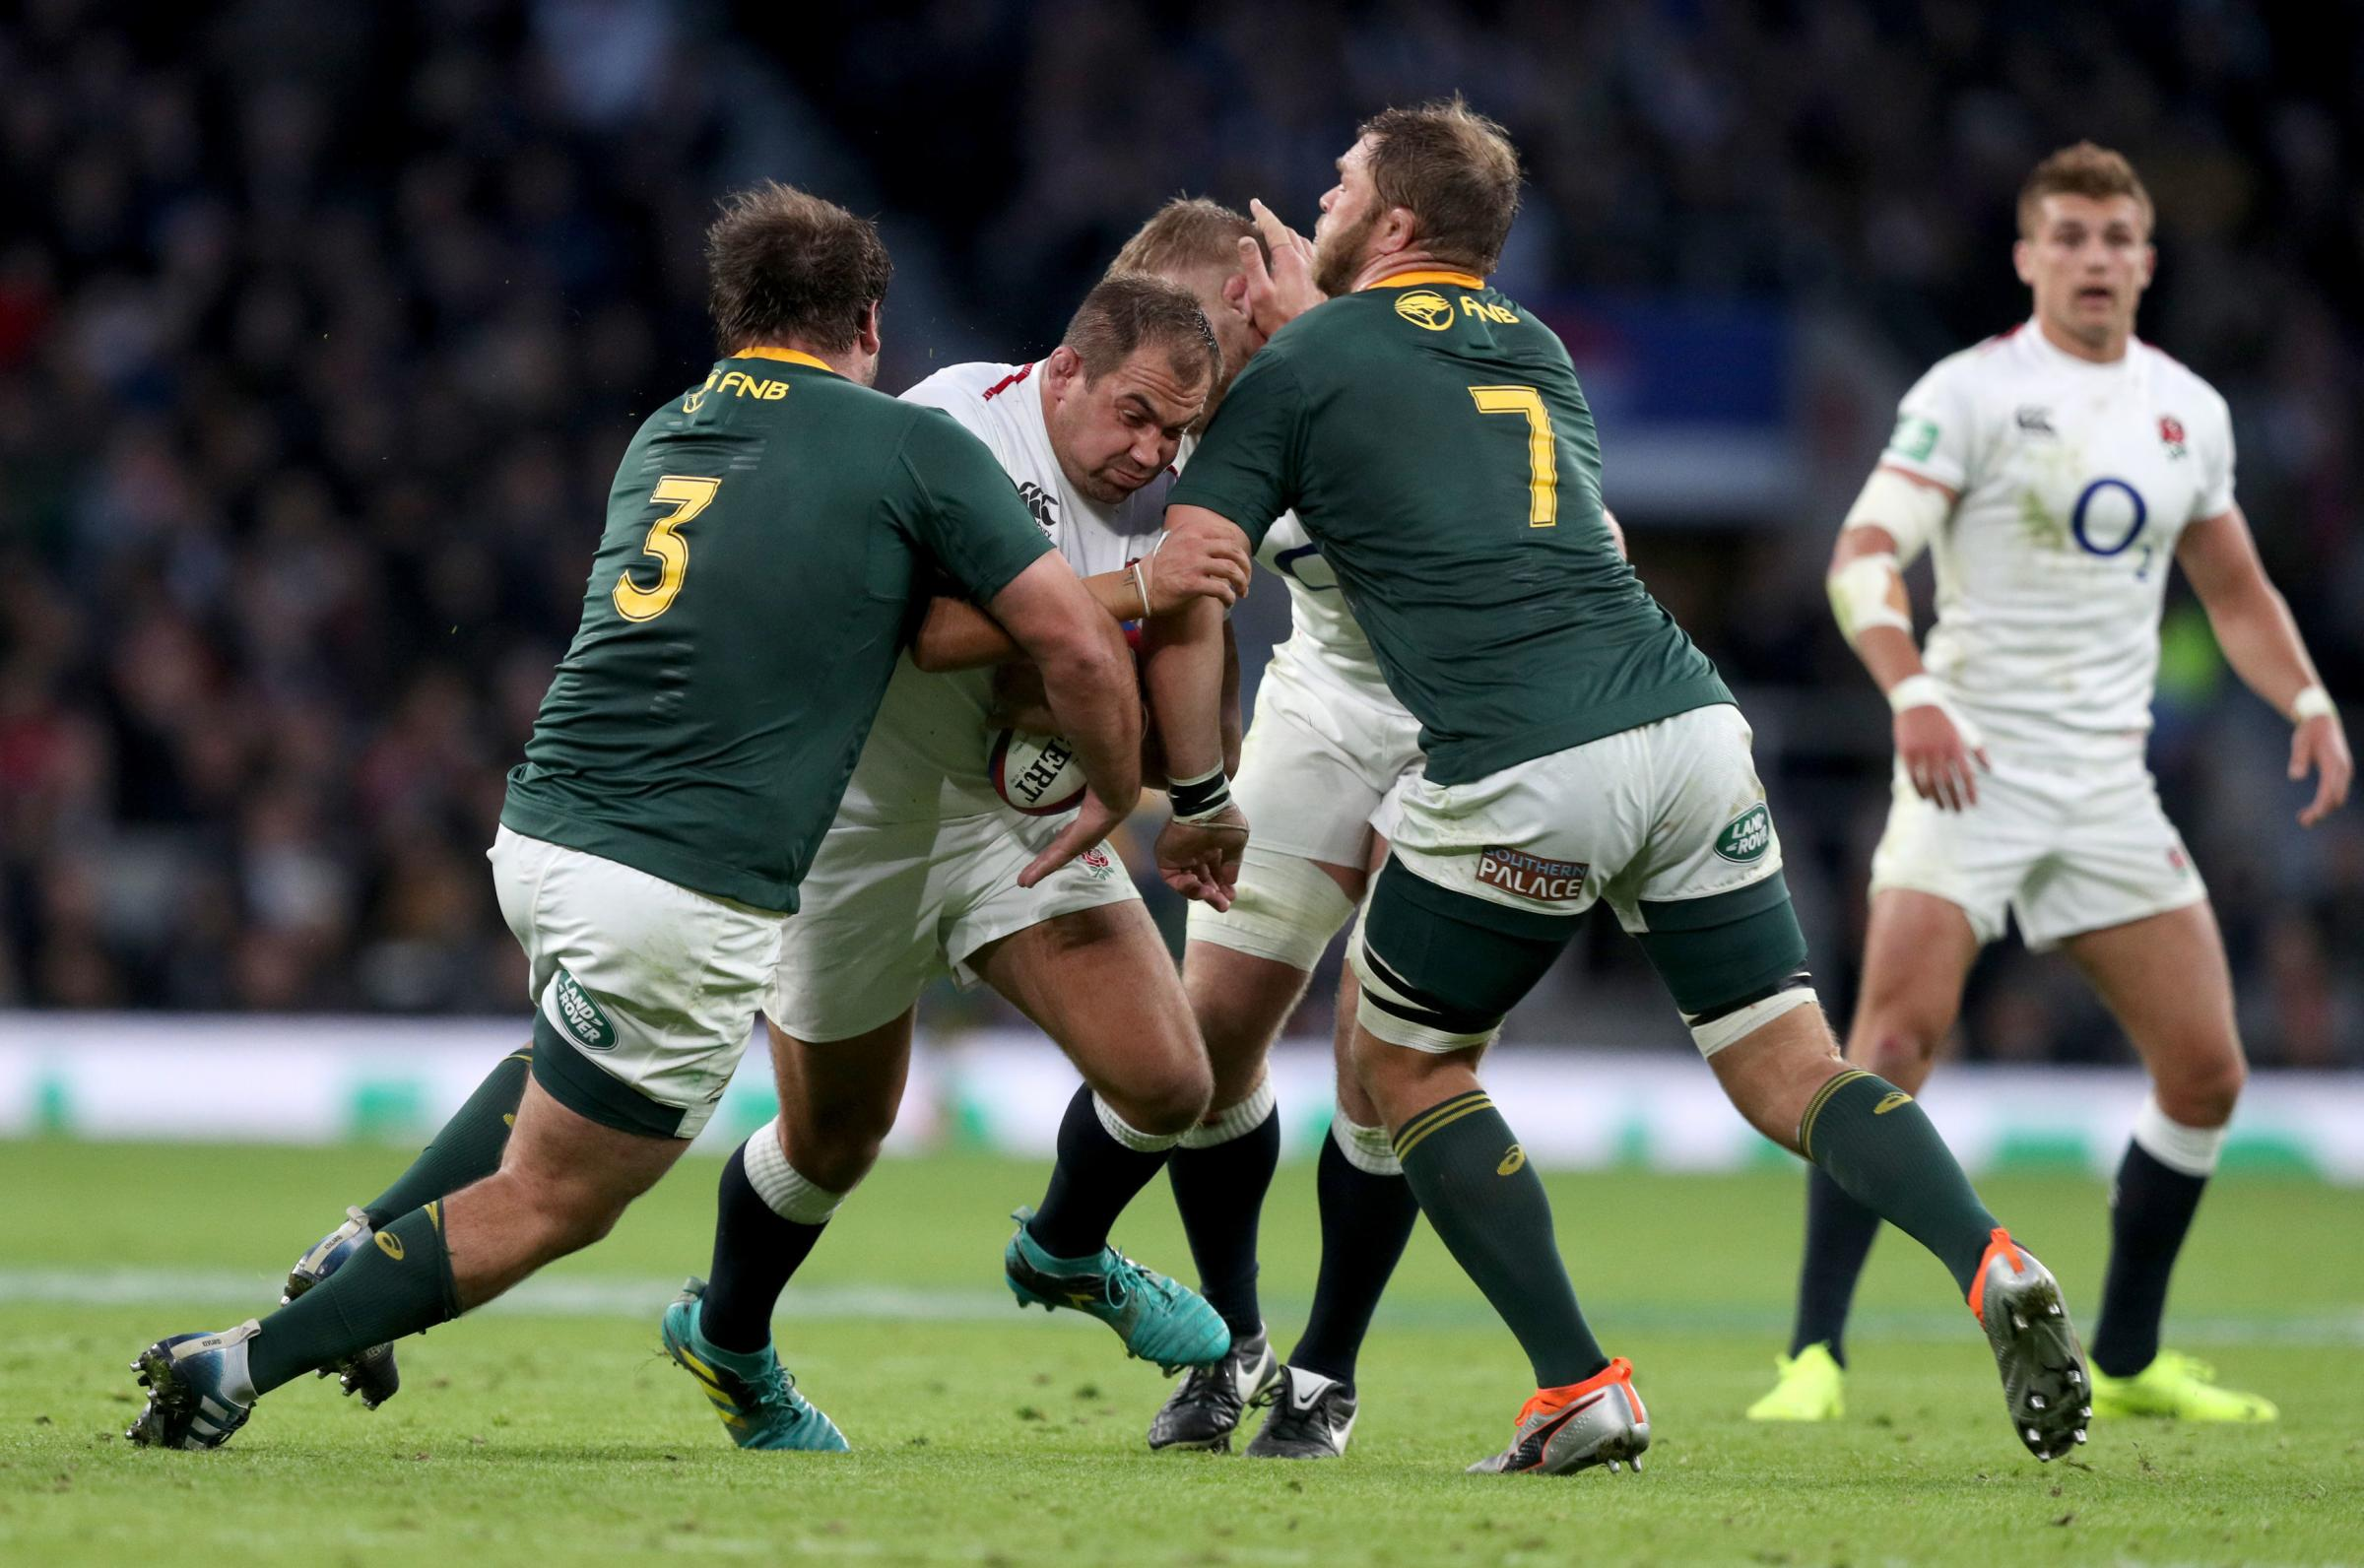 England's Ben Moon (2nd left) is tackled by South Africa's Frans Malherbe (left) and Duane Vermeulen during the Autumn International match at Twickenham Stadium, London. PRESS ASSOCIATION Photo. Picture date: Saturday November 3, 201